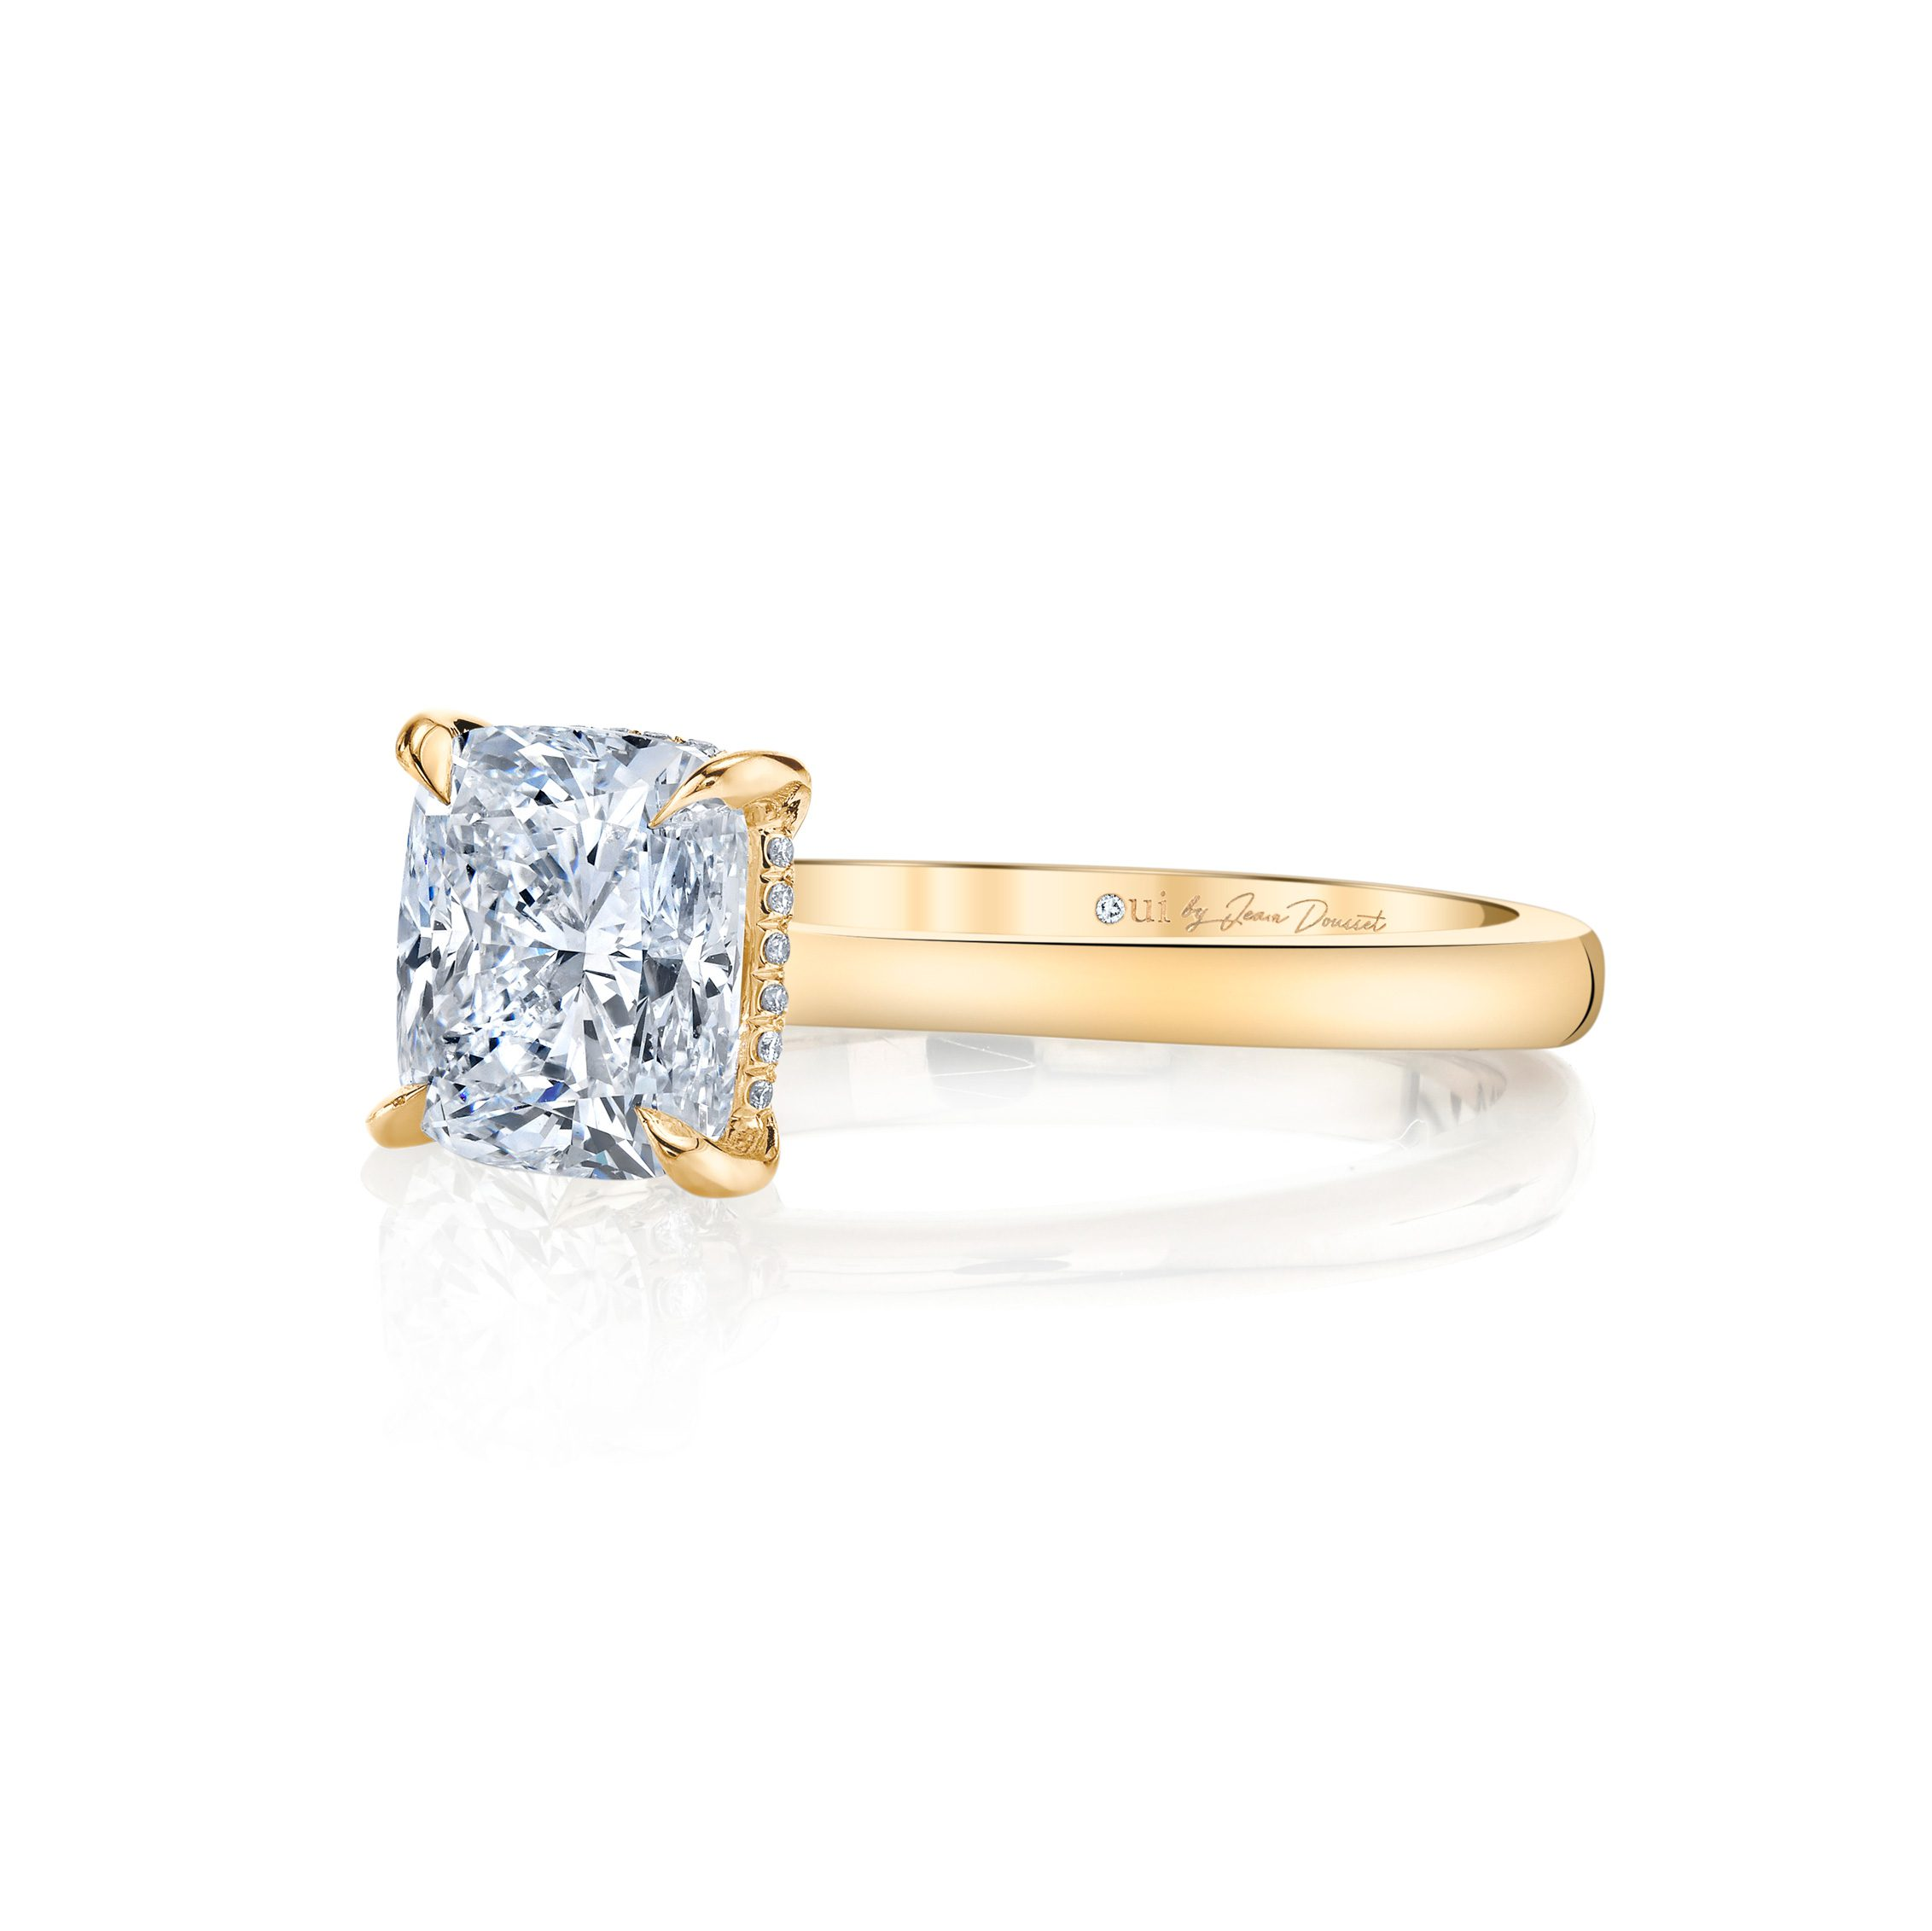 Colette Cushion Solitaire Engagement Ring with a sold band in 18k Yellow Gold Side Shot by Oui by Jean DoussetColette Cushion Solitaire Engagement Ring with a sold band in 18k Yellow Gold by Oui by Jean Dousset